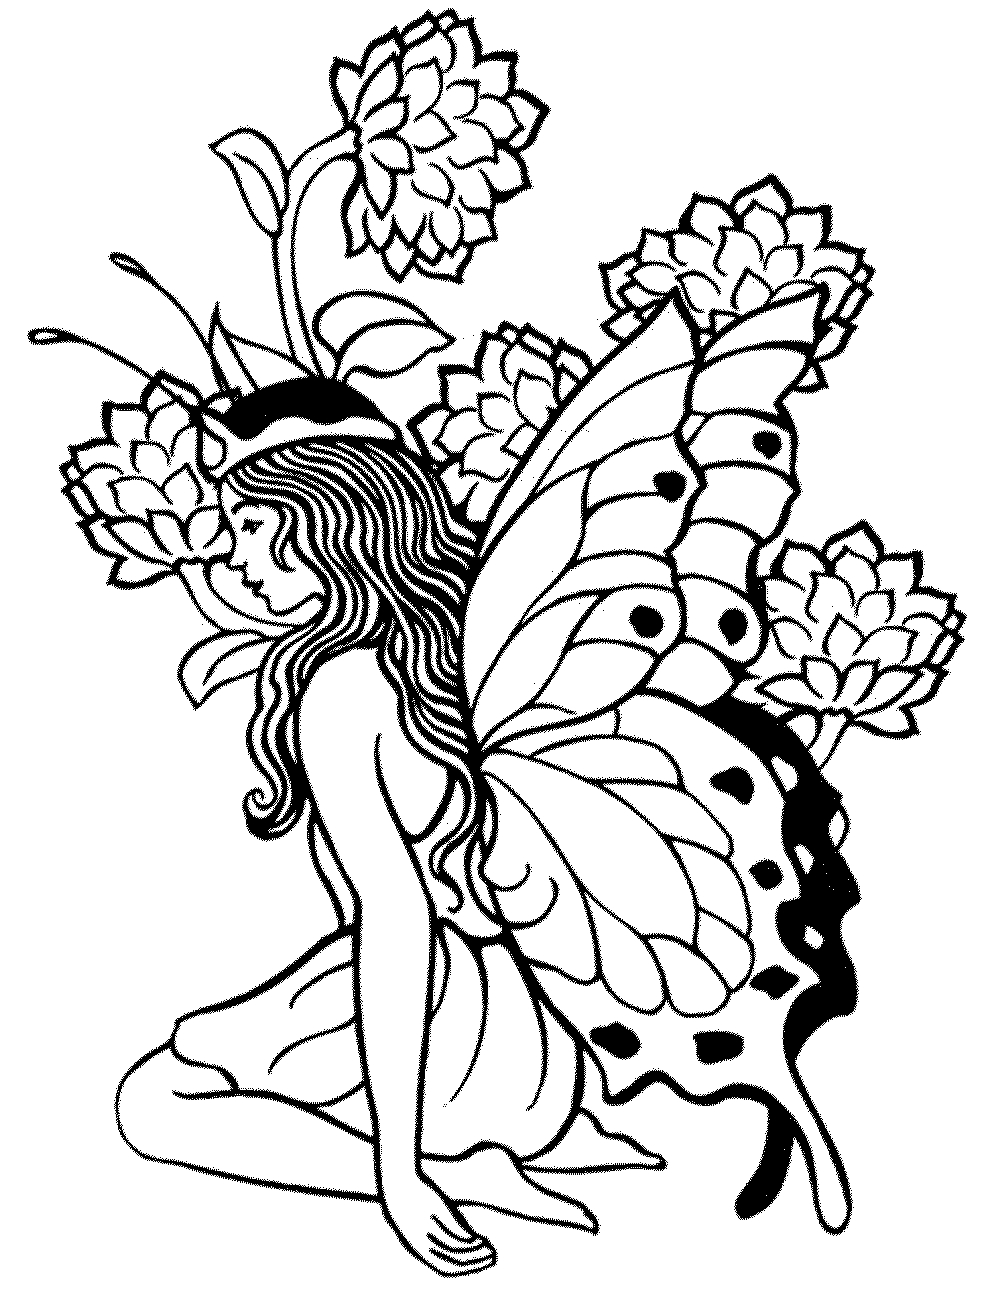 Printable Adult Coloring Pages Fairy - Coloring Home - Free Printable Fairy Coloring Pictures